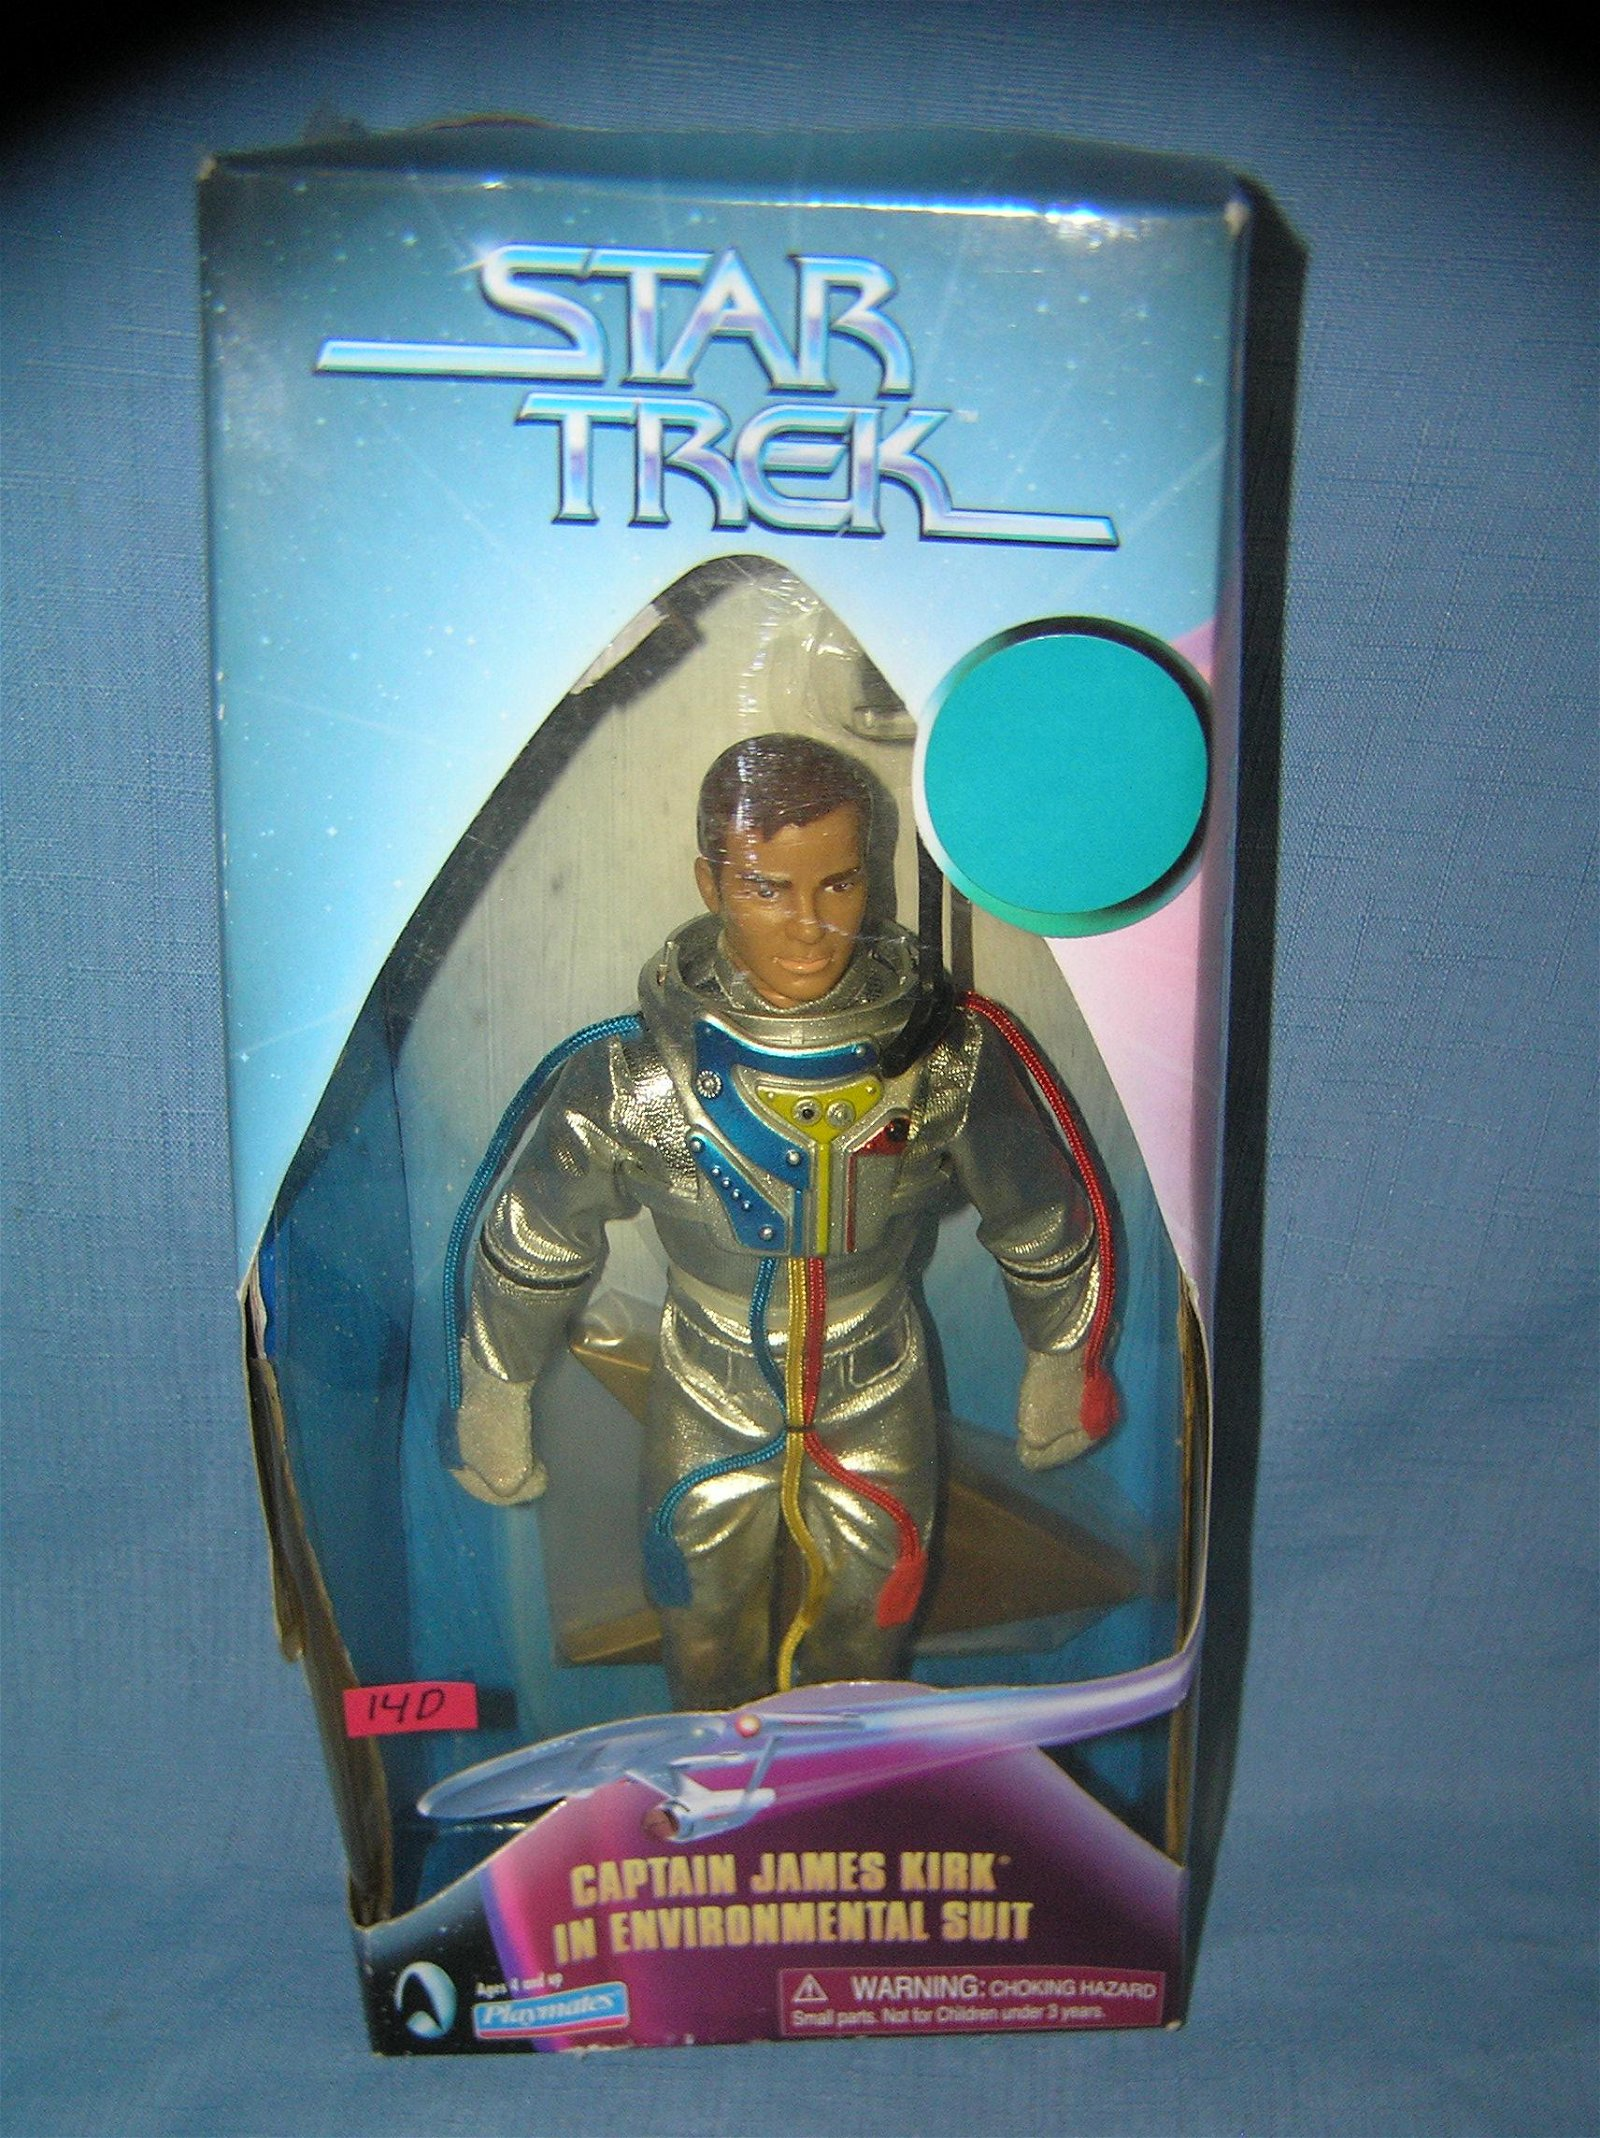 Star Trek Capt Kirk action figure with original box